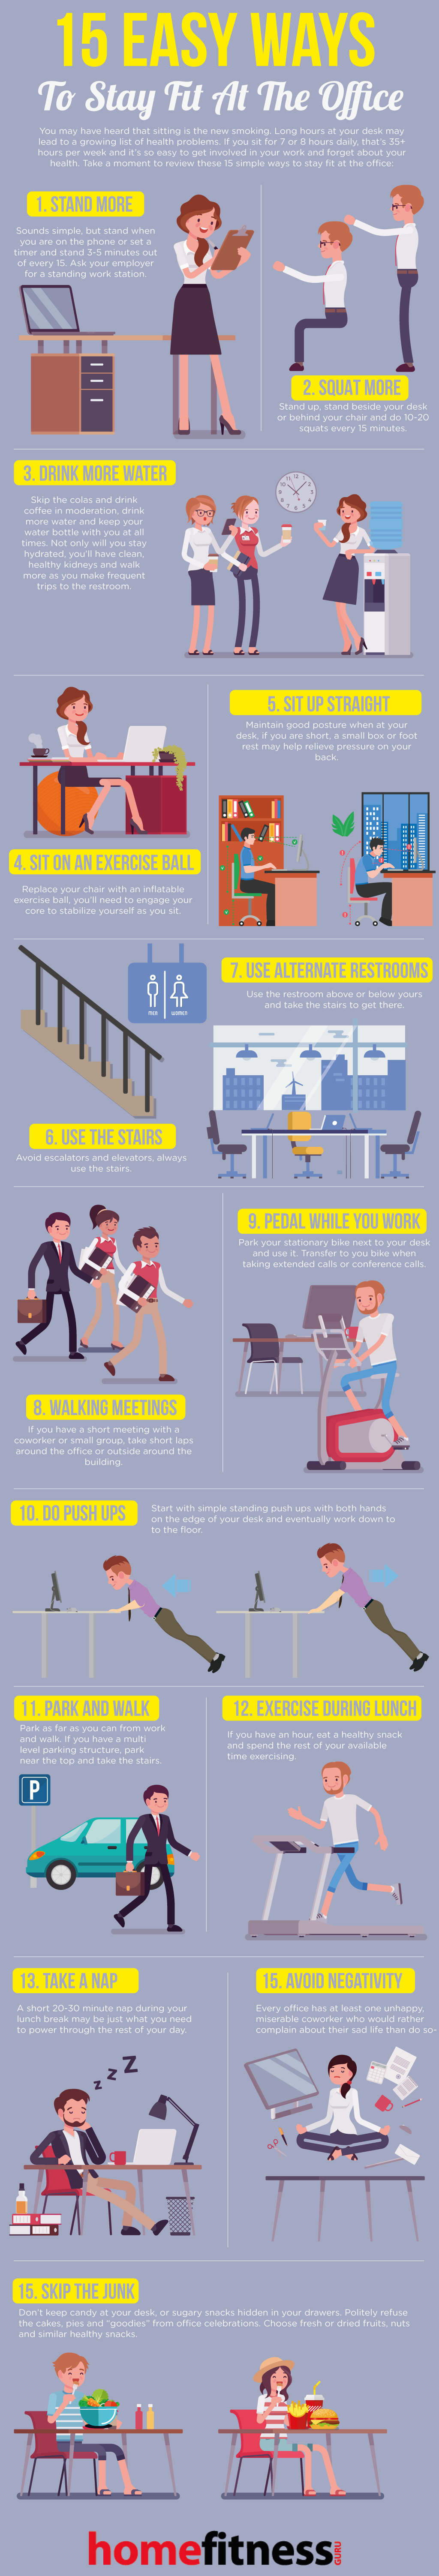 Easy Ways to Stay Fit at the Office